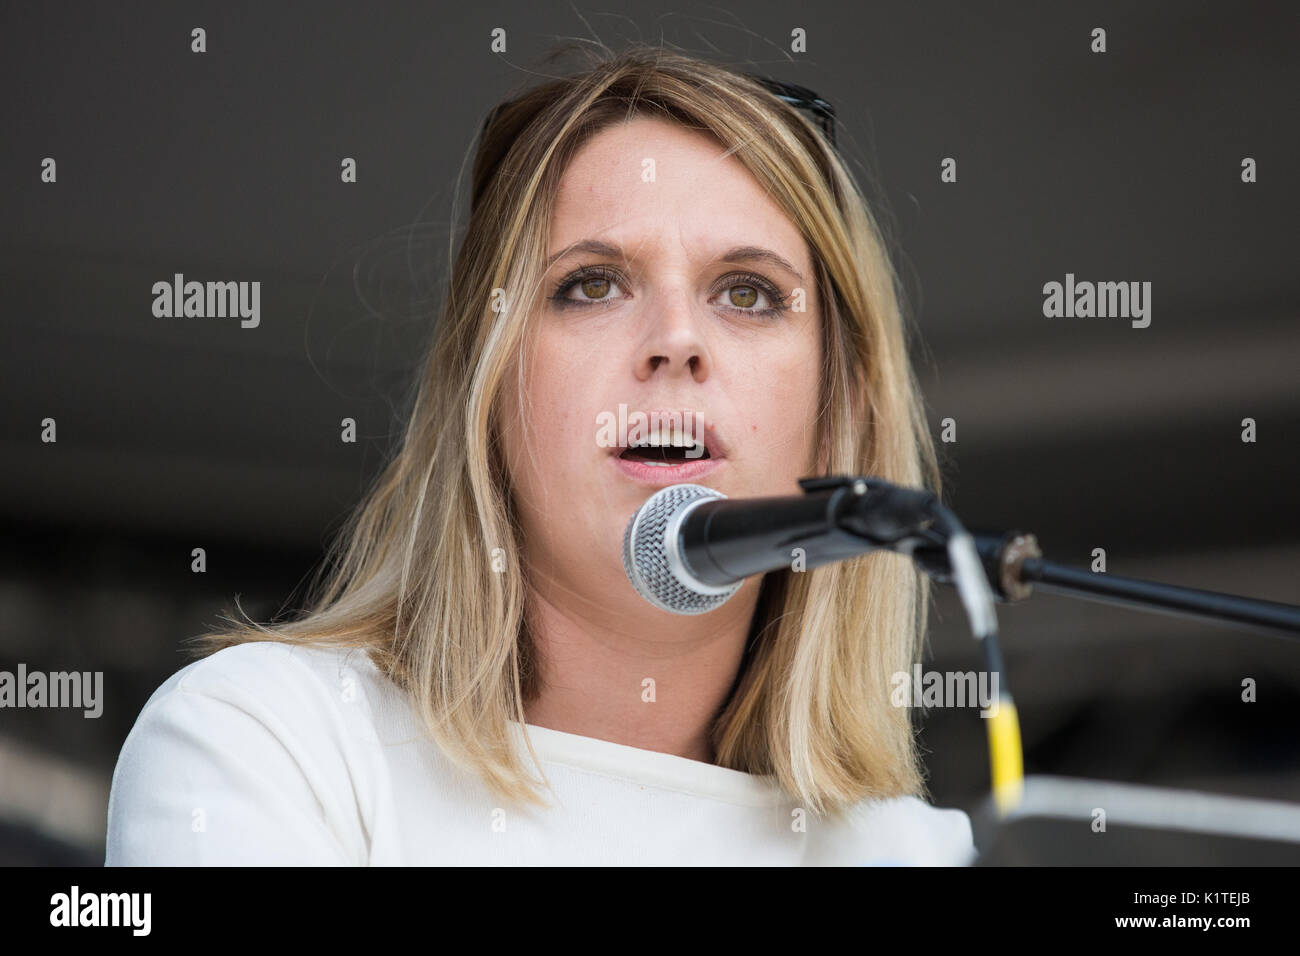 London, UK. 16th July, 2017. Laura Smith, Labour MP for Crewe and Nantwich, addresses campaigners against cuts to - Stock Image